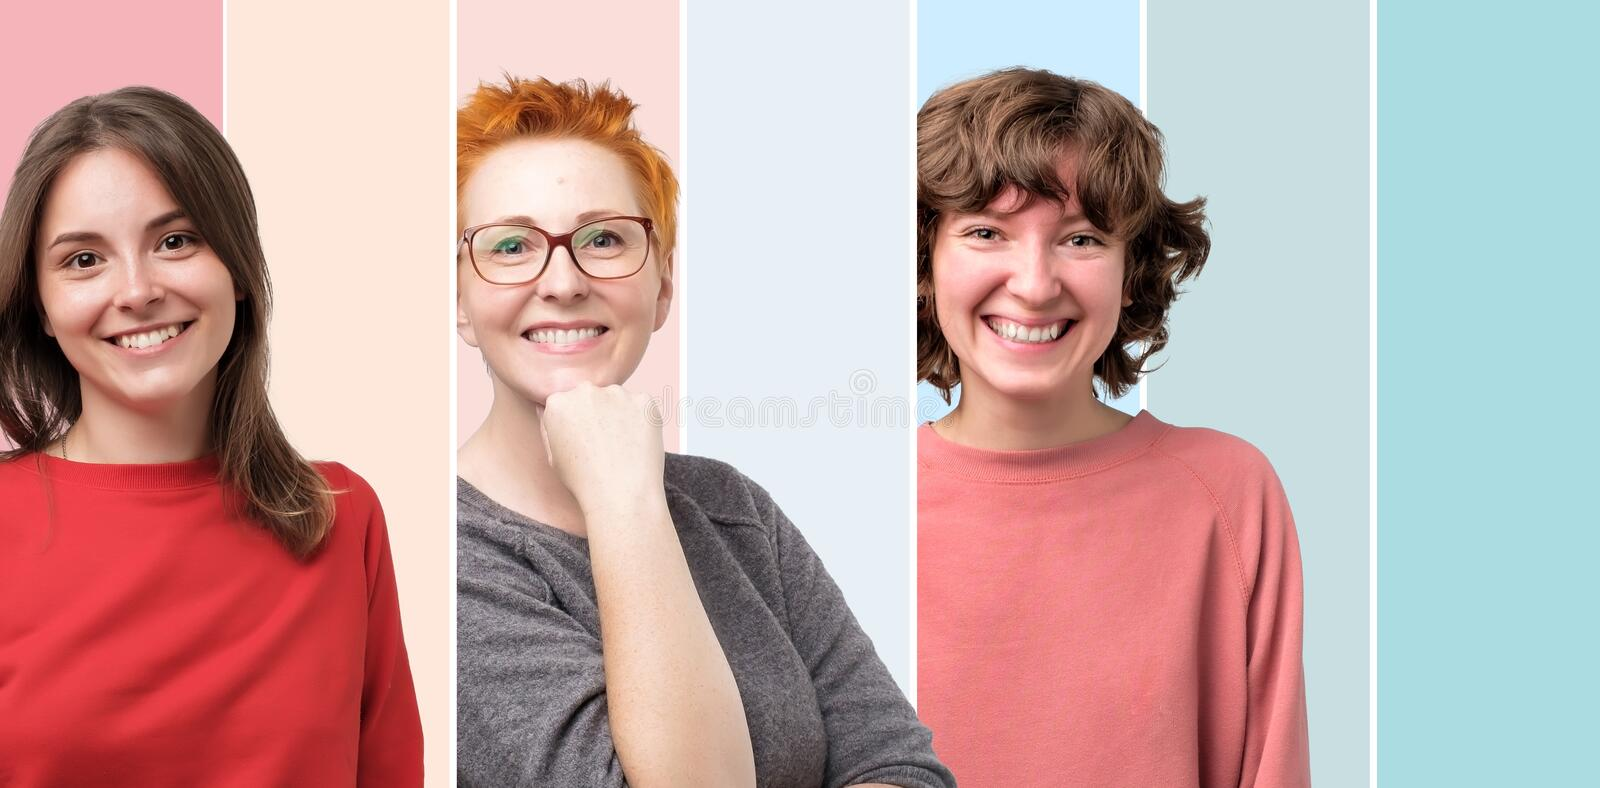 Beautiful smiling female face only collage. Positive emotion royalty free stock photography